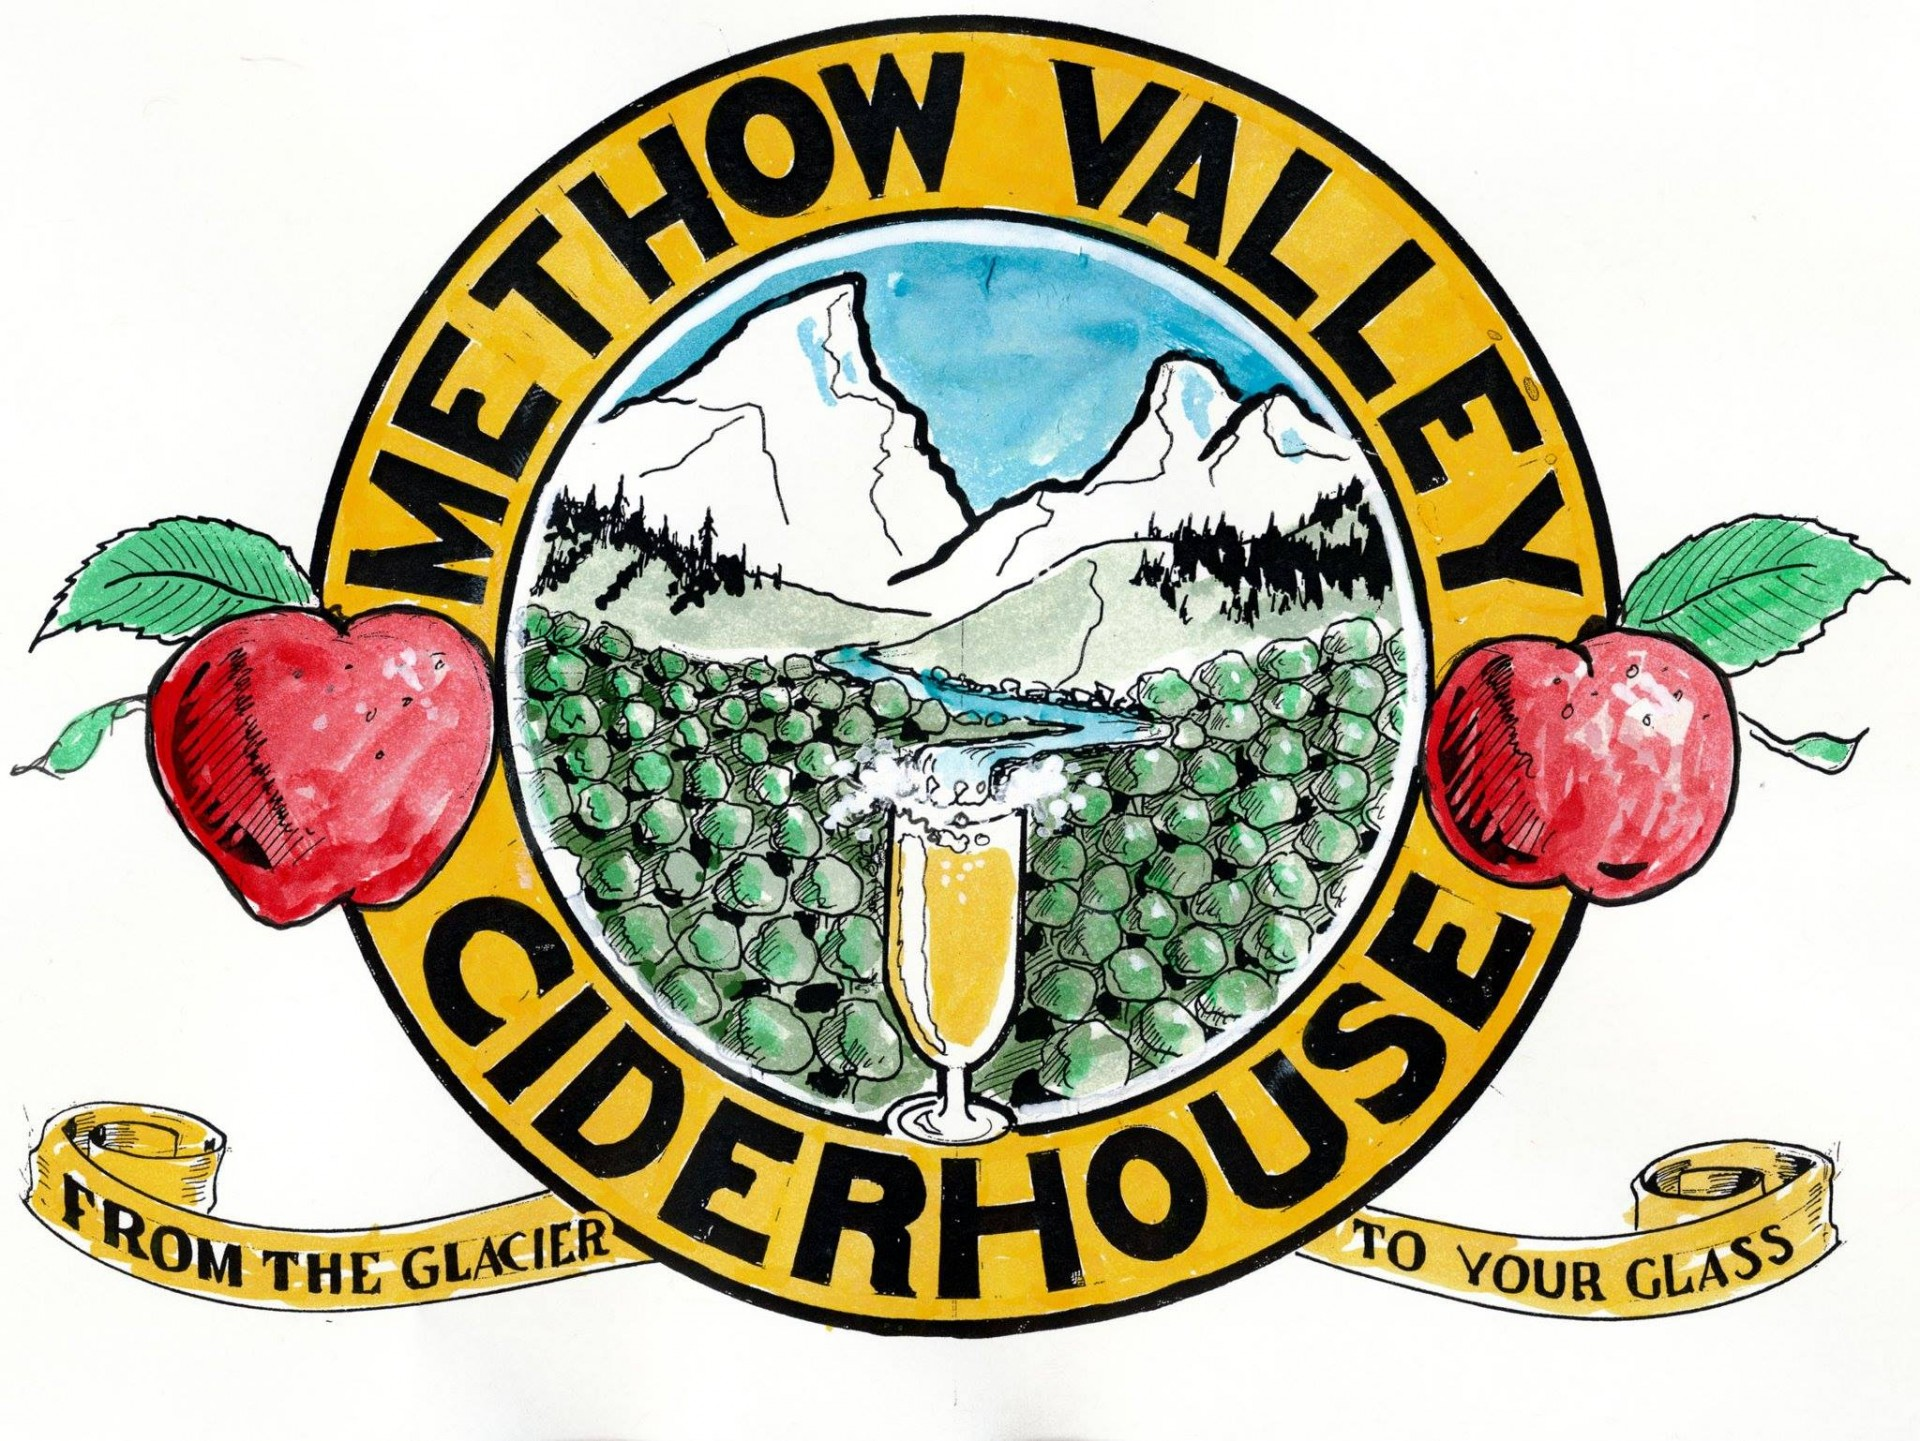 Methow Valley Ciderhouse